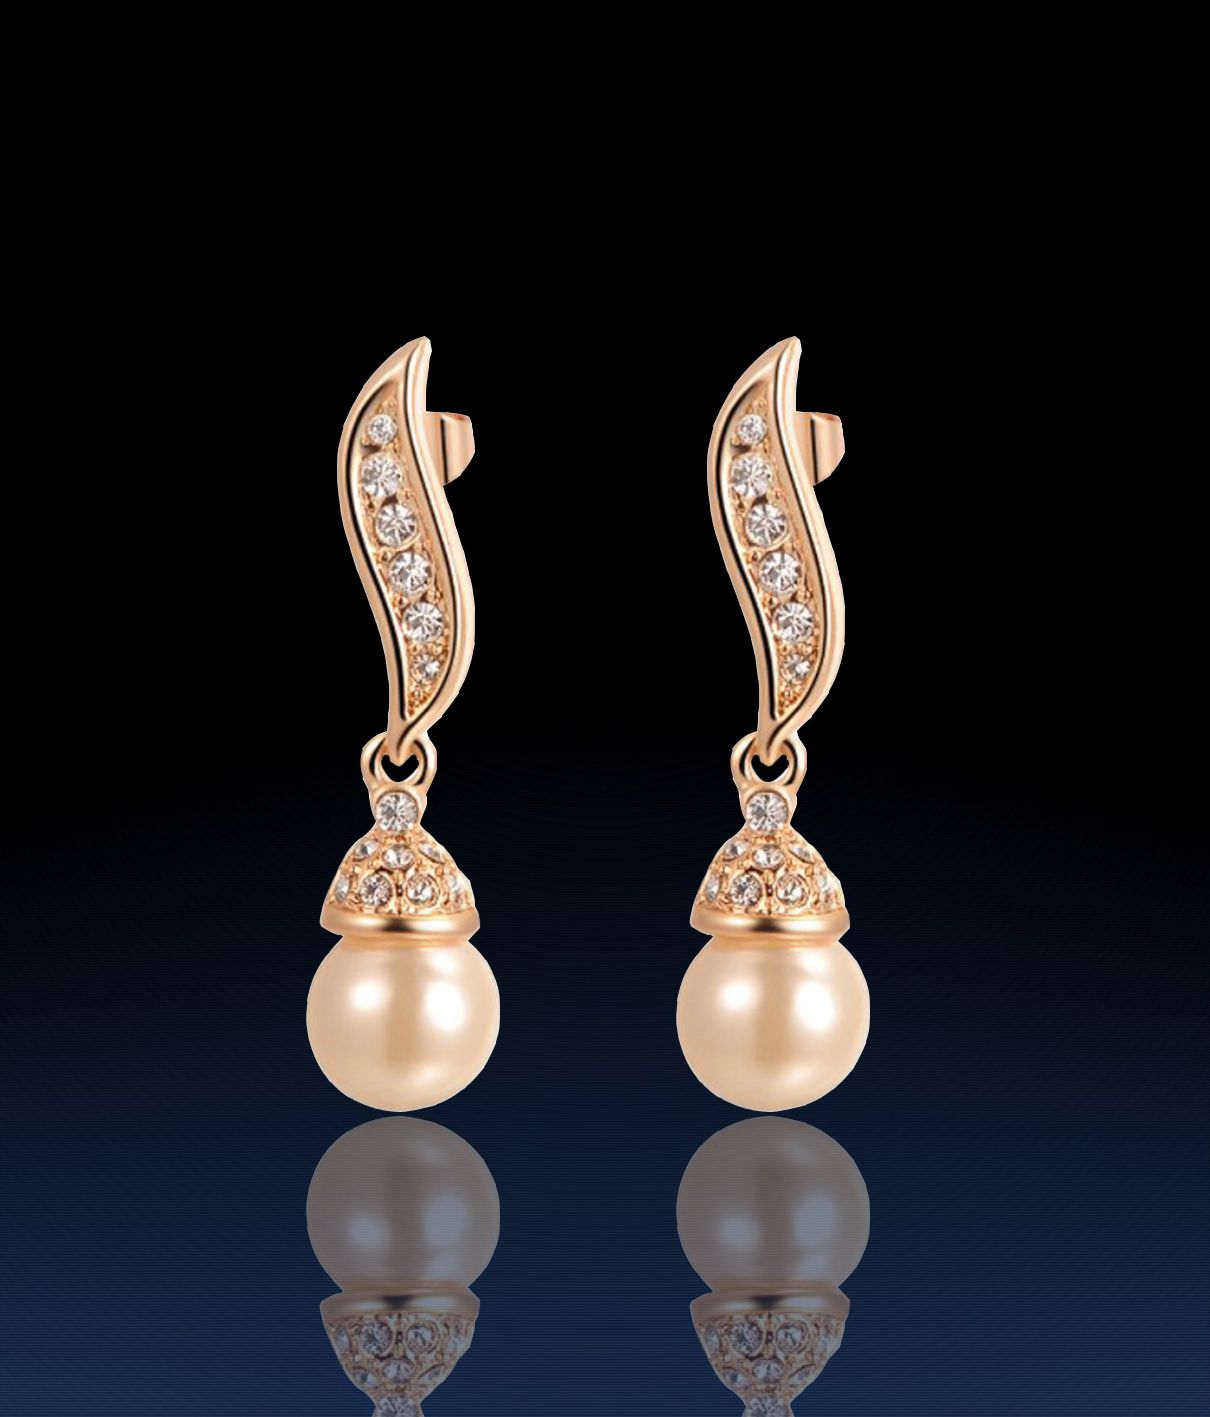 Kaizer Jewelry Freshwater Pearl Gold Plated Stud Earrings